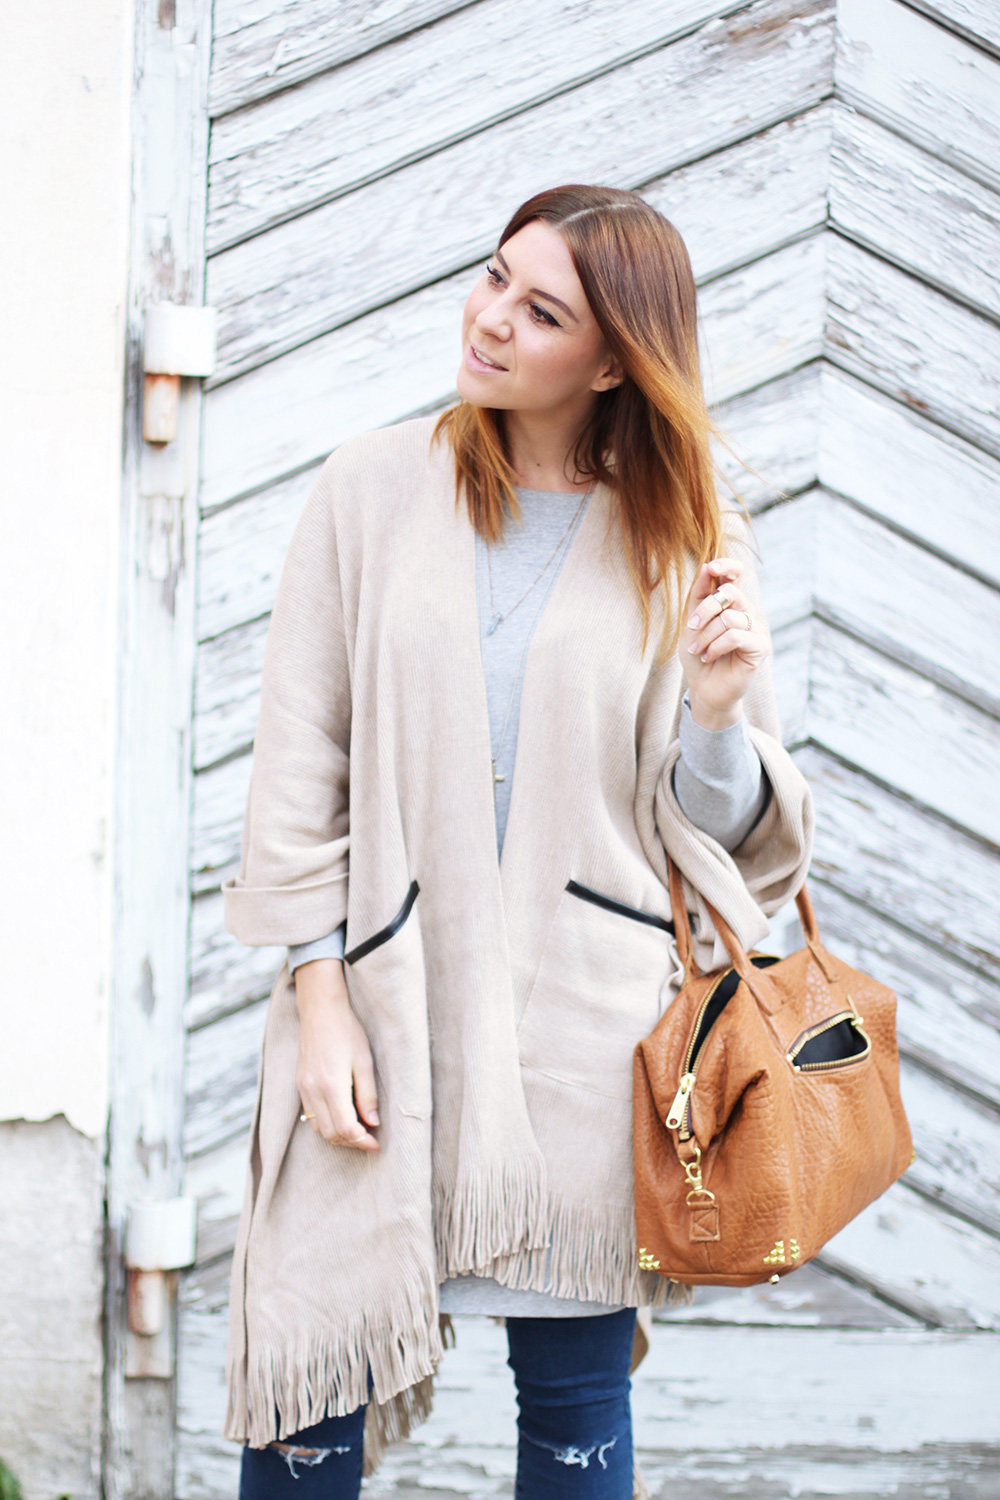 who is mocca, modeblog, fashionblog, cape kombinieren, valentino rocketed pumps, kimder tasche, frenchie, oversize outfit, layering look, whoismocca.com